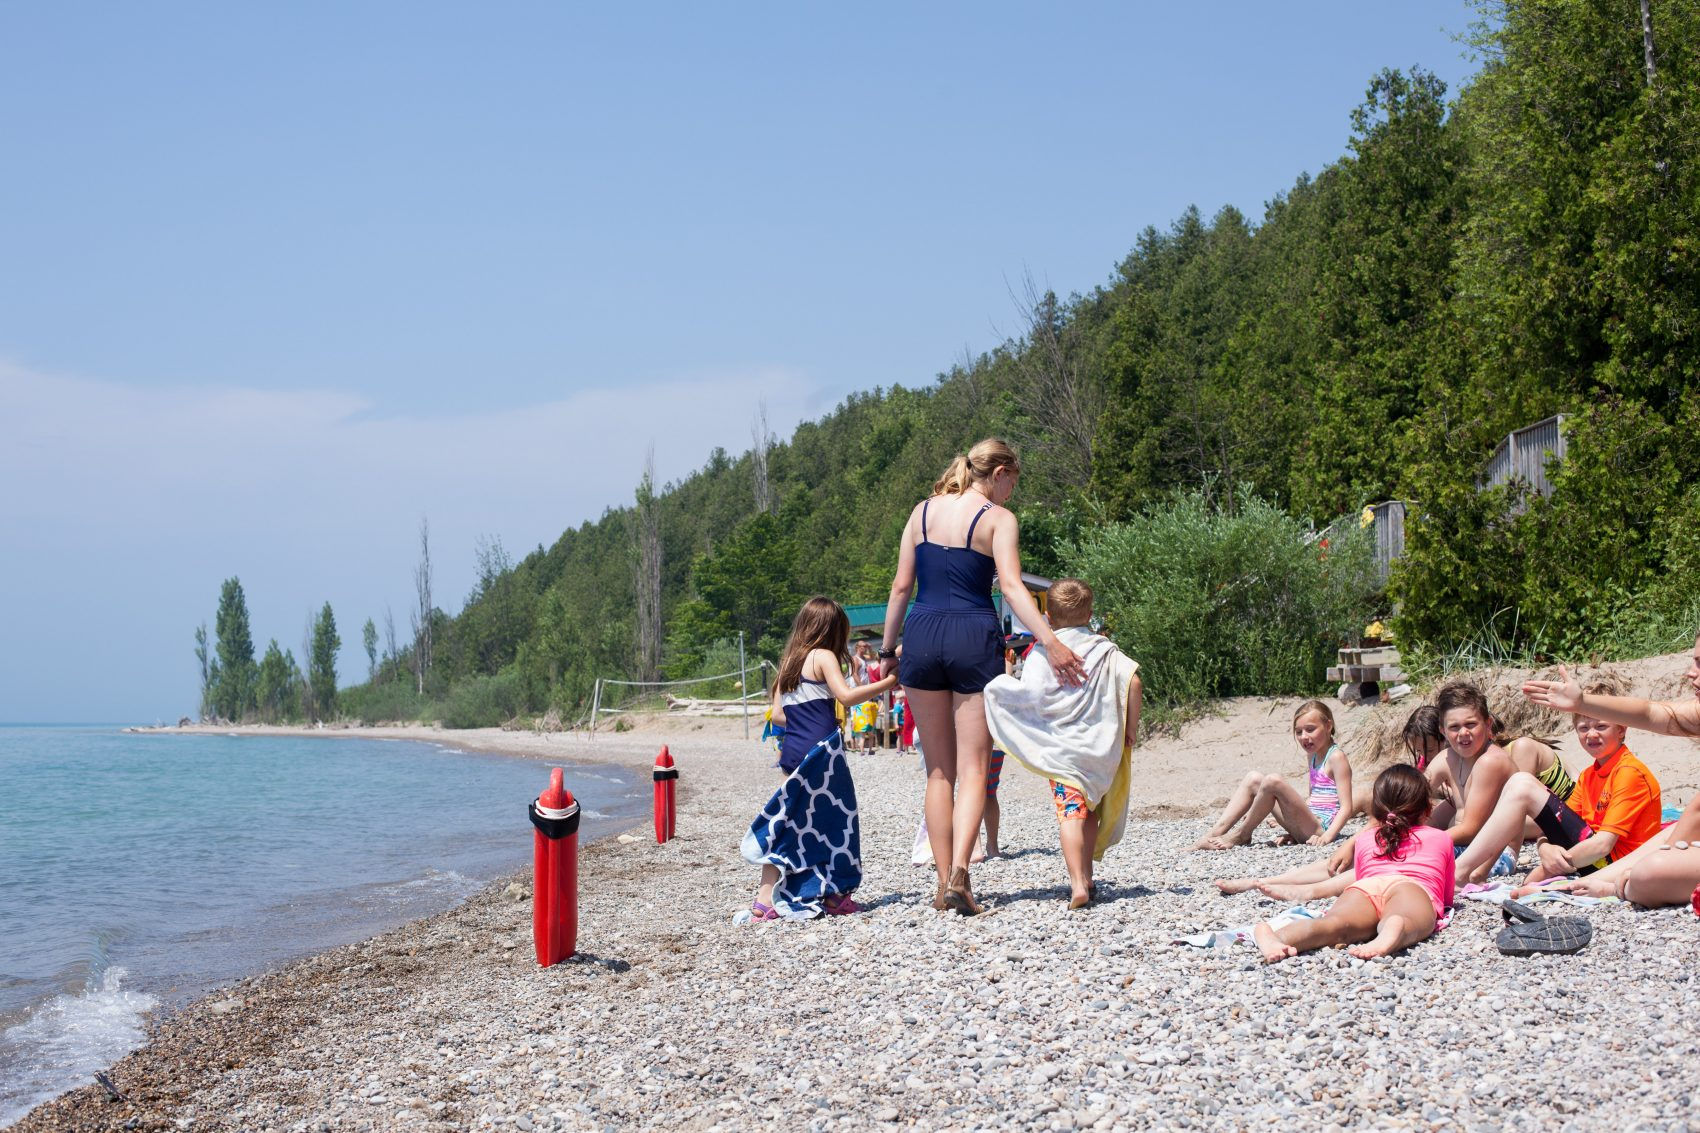 A staff member with two campers standing all holding hands walking down Lake Huron beach.